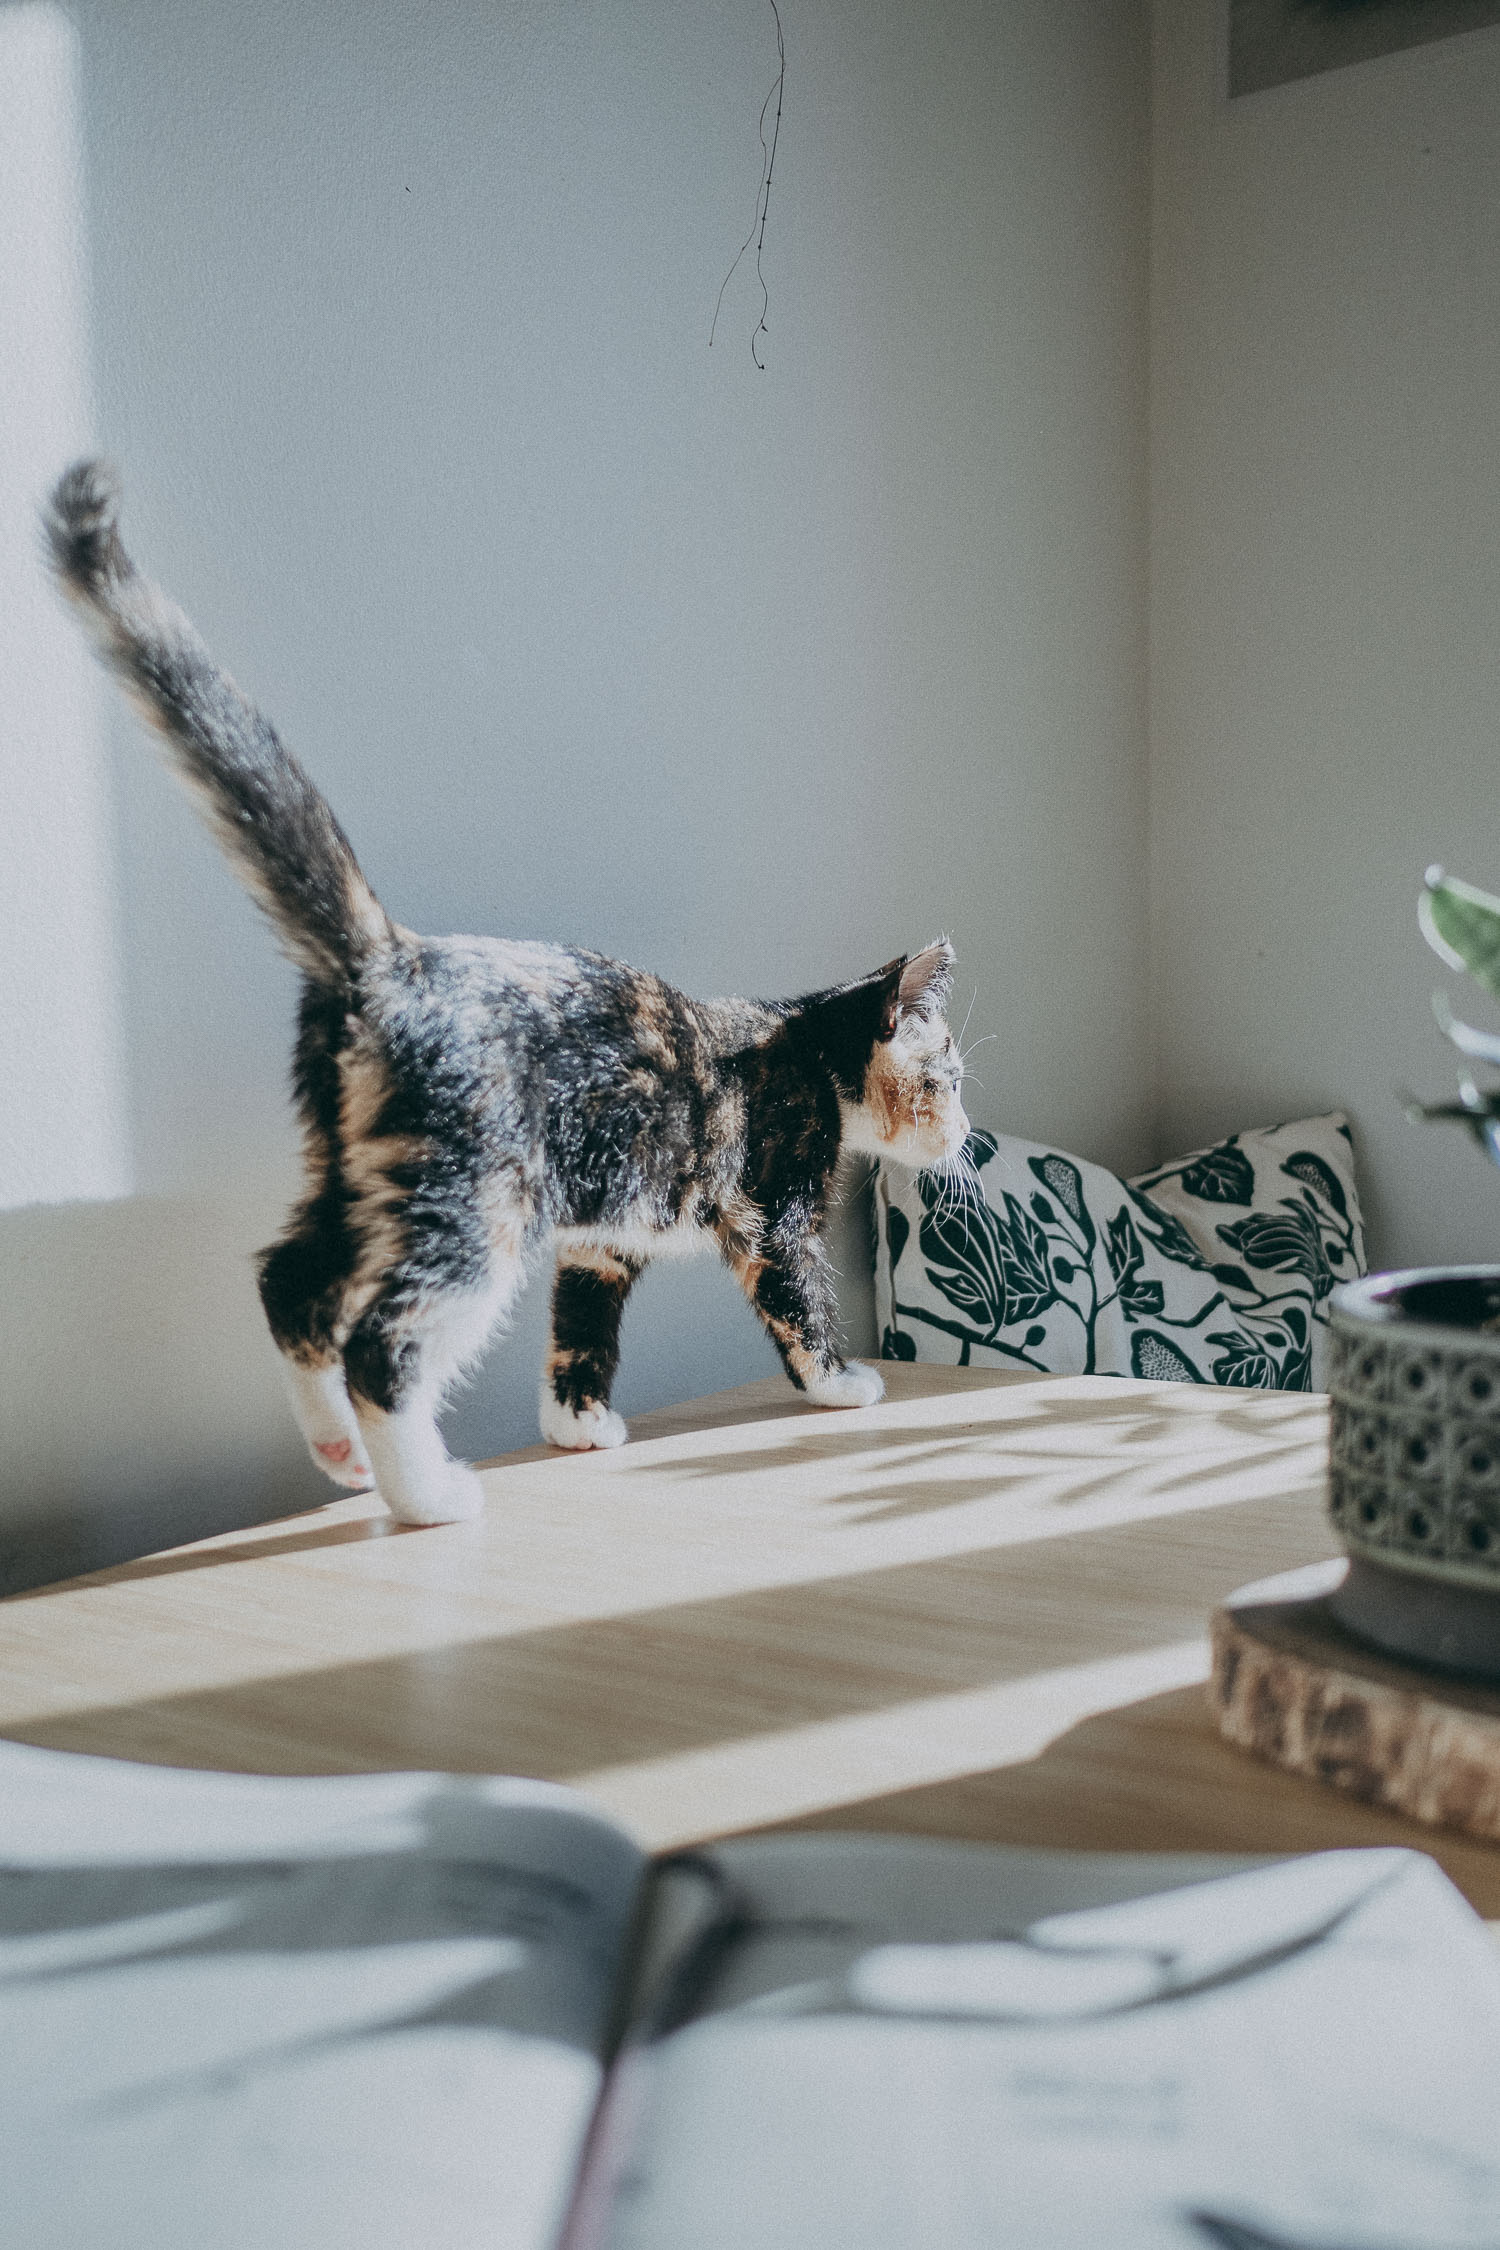 kitten on kitchen table